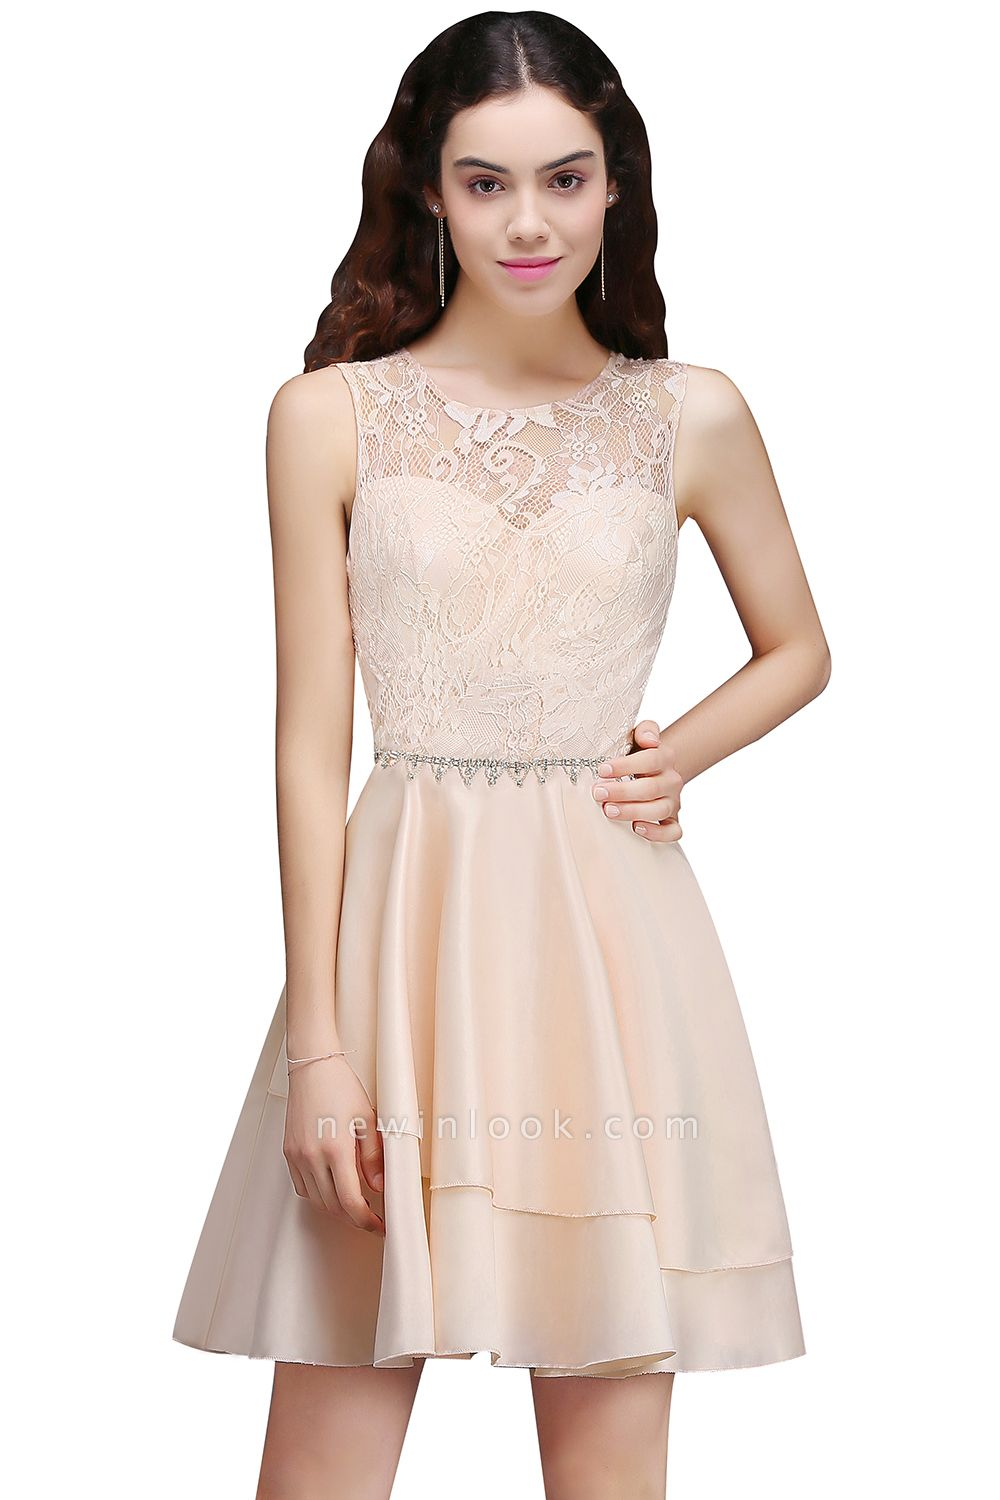 ANNABELLE | Quinceanera Short Cute 15 Dama Dress With Lace